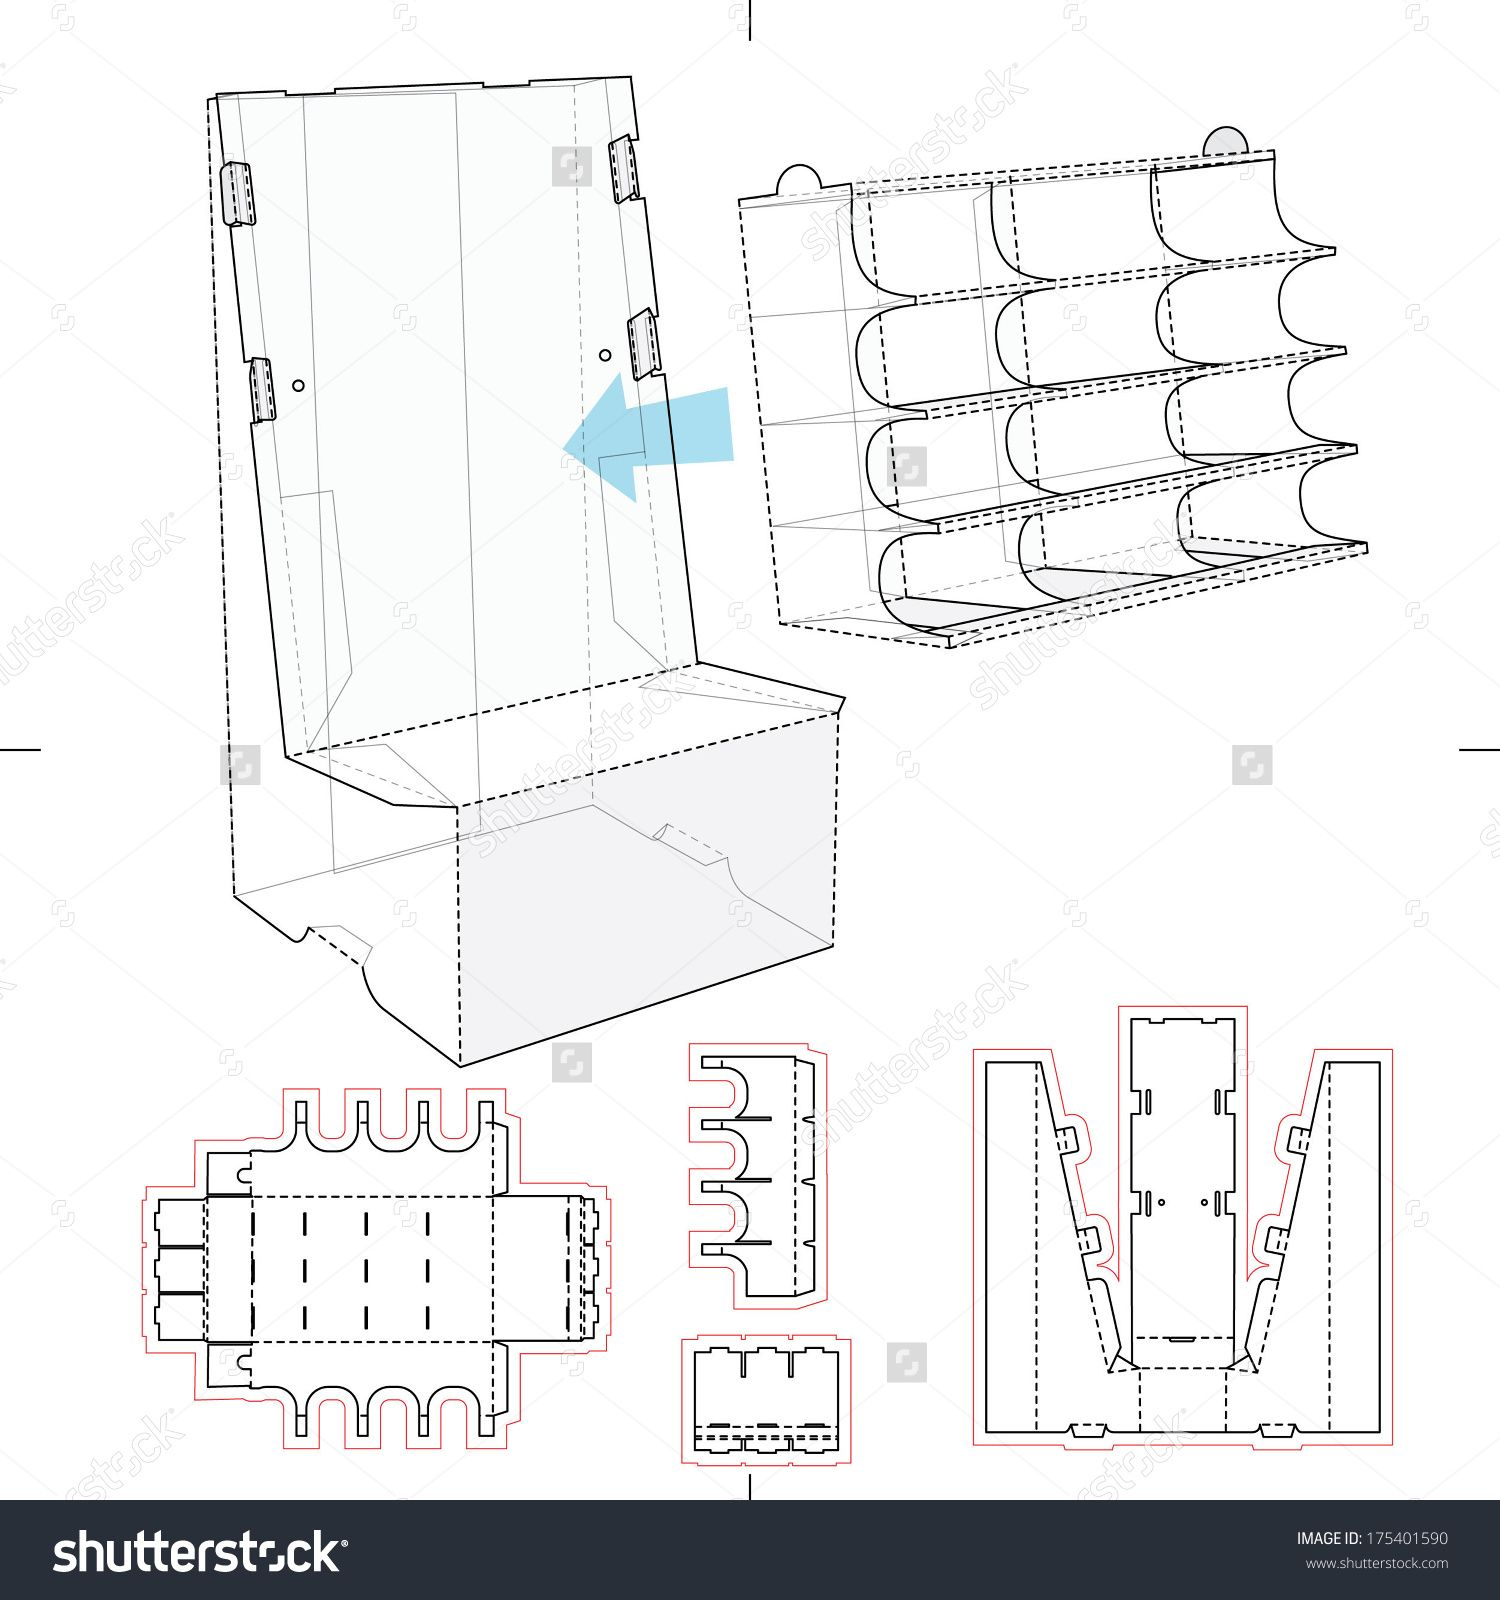 Product display stand with shelf compartments and blueprint layout product display stand with shelf compartments and blueprint layout stock vector illustration 175401590 shutterstock malvernweather Choice Image